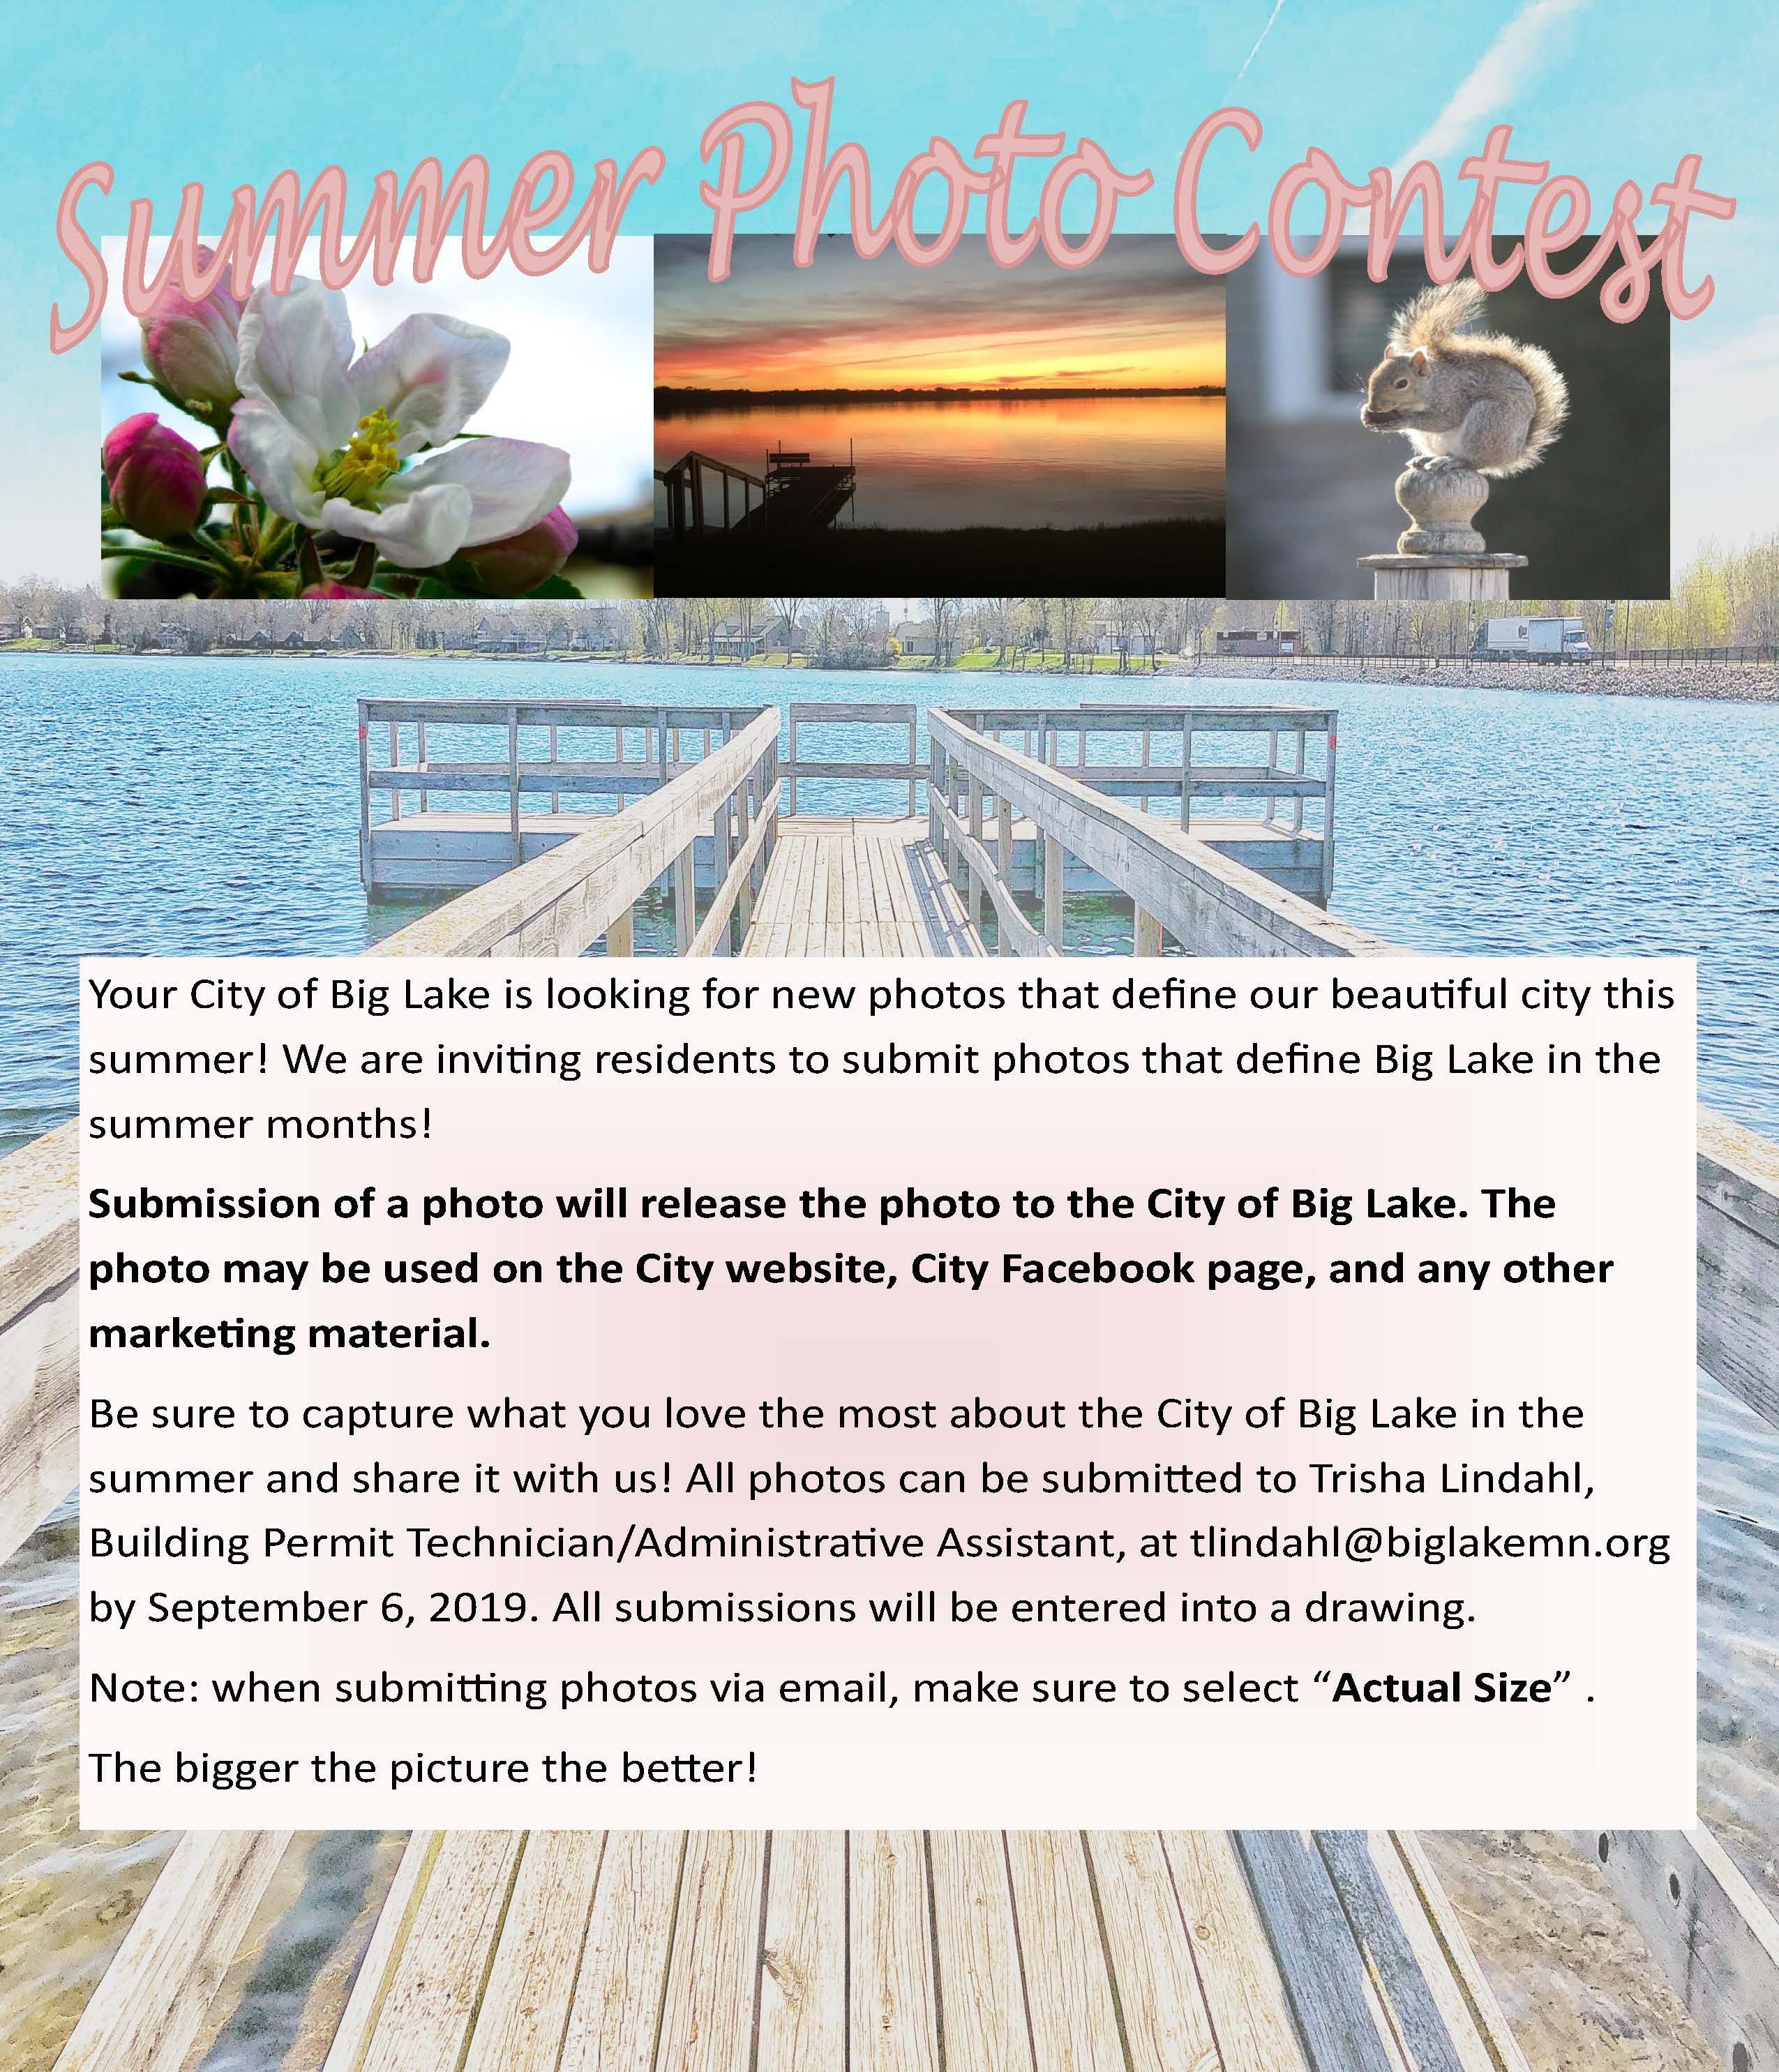 Summer Photo Contest Flyer